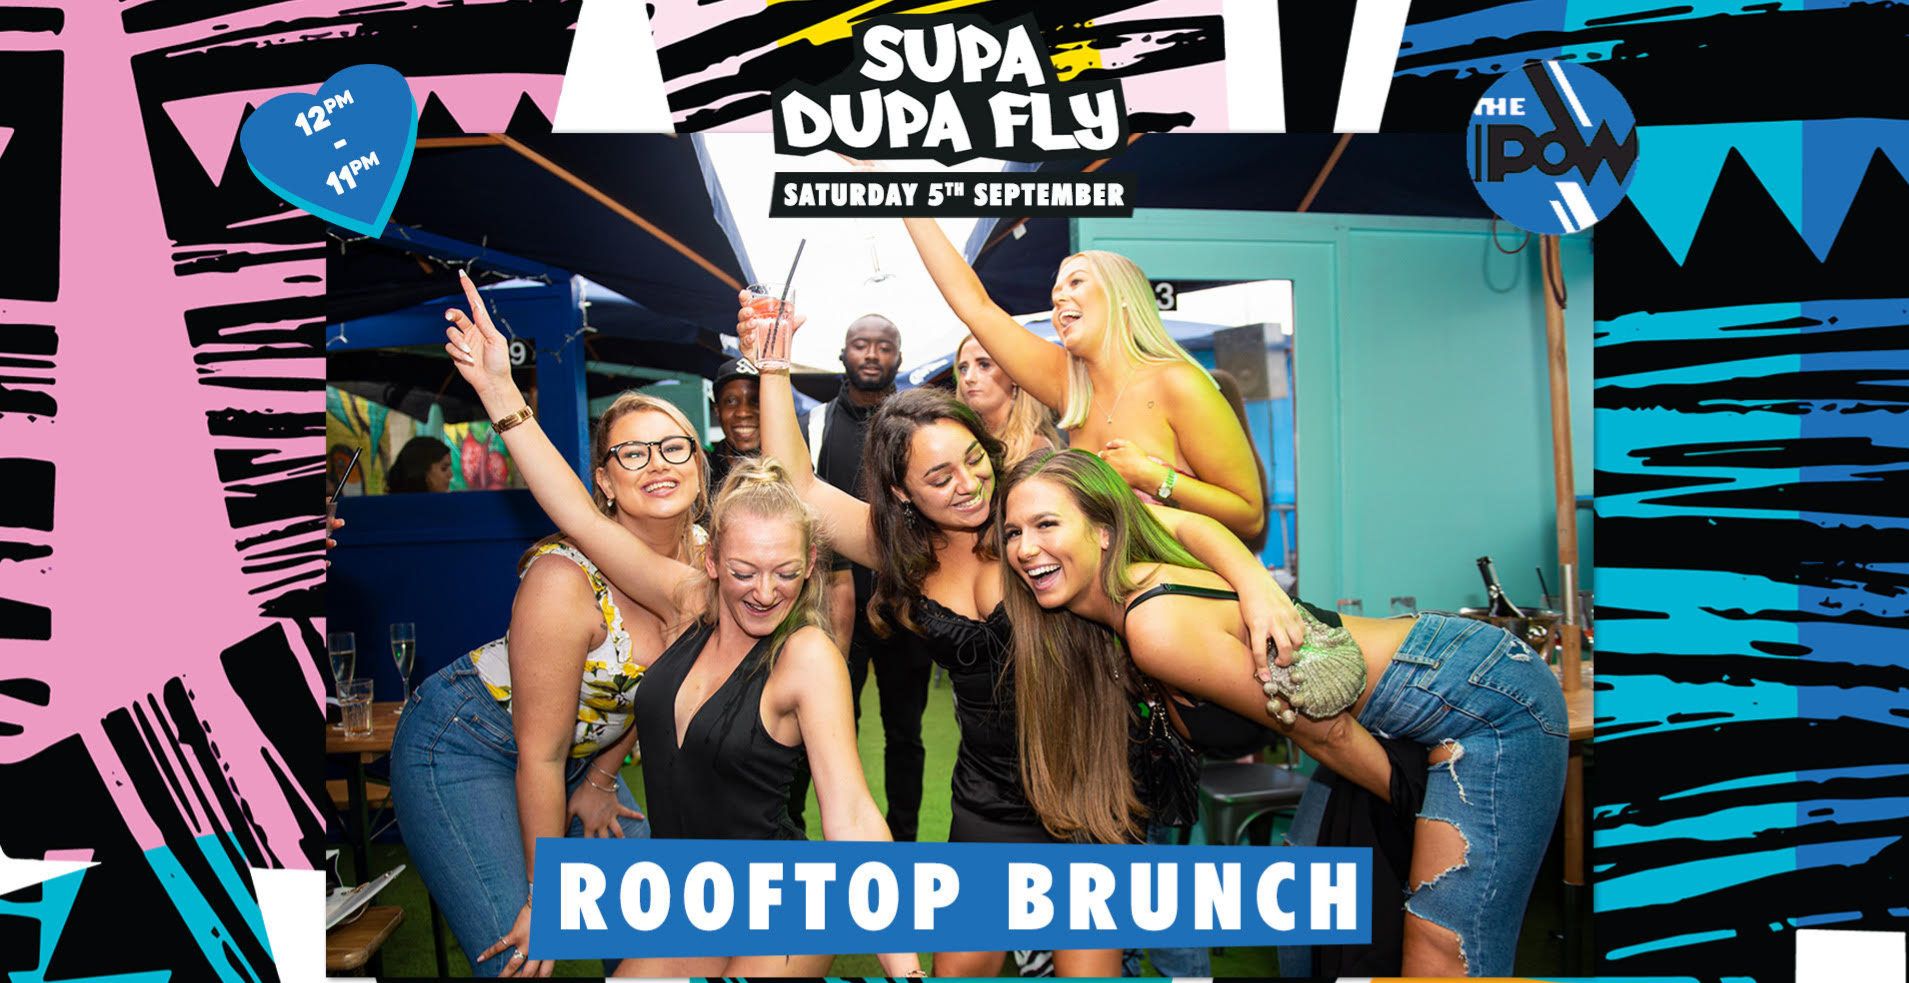 Supa Dupa Fly x Rooftop Brunch